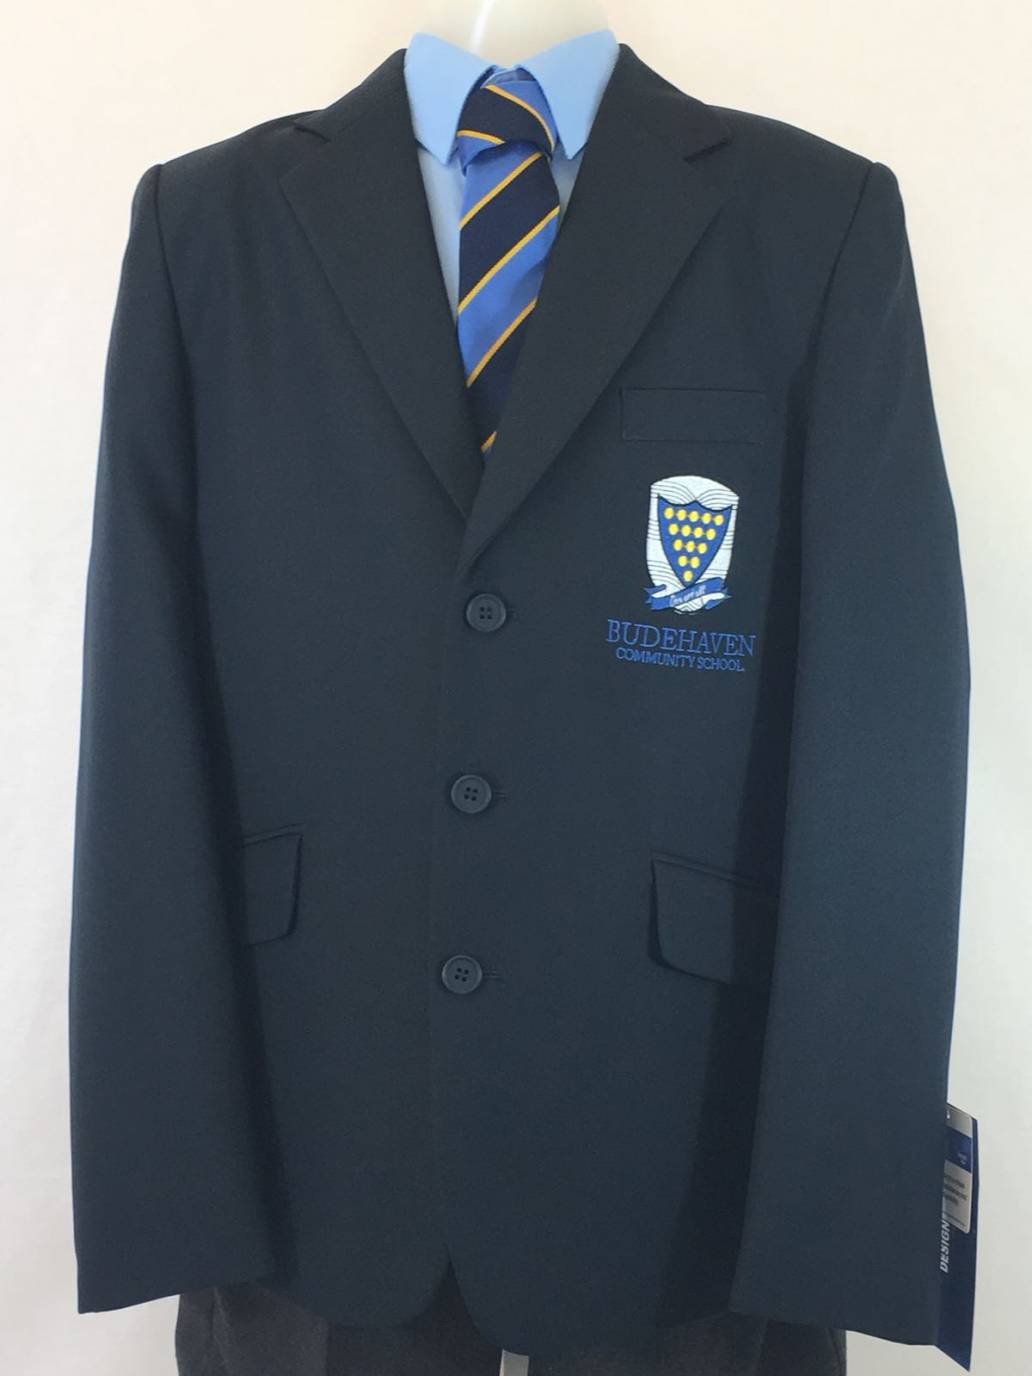 Budehaven  School Boys Jacket